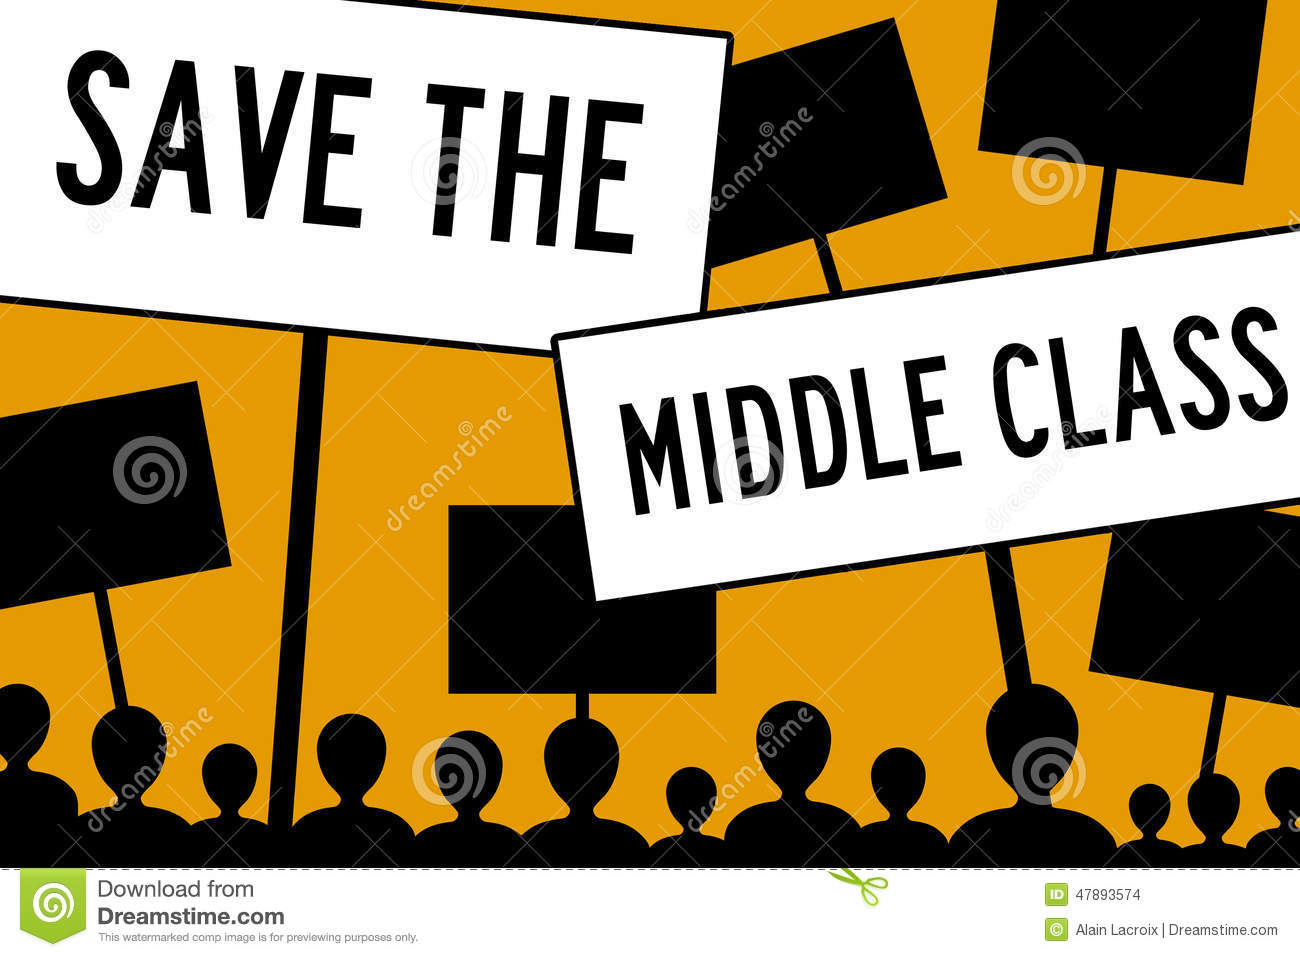 Middle class clipart jpg transparent library Middle class | Clipart Panda - Free Clipart Images jpg transparent library